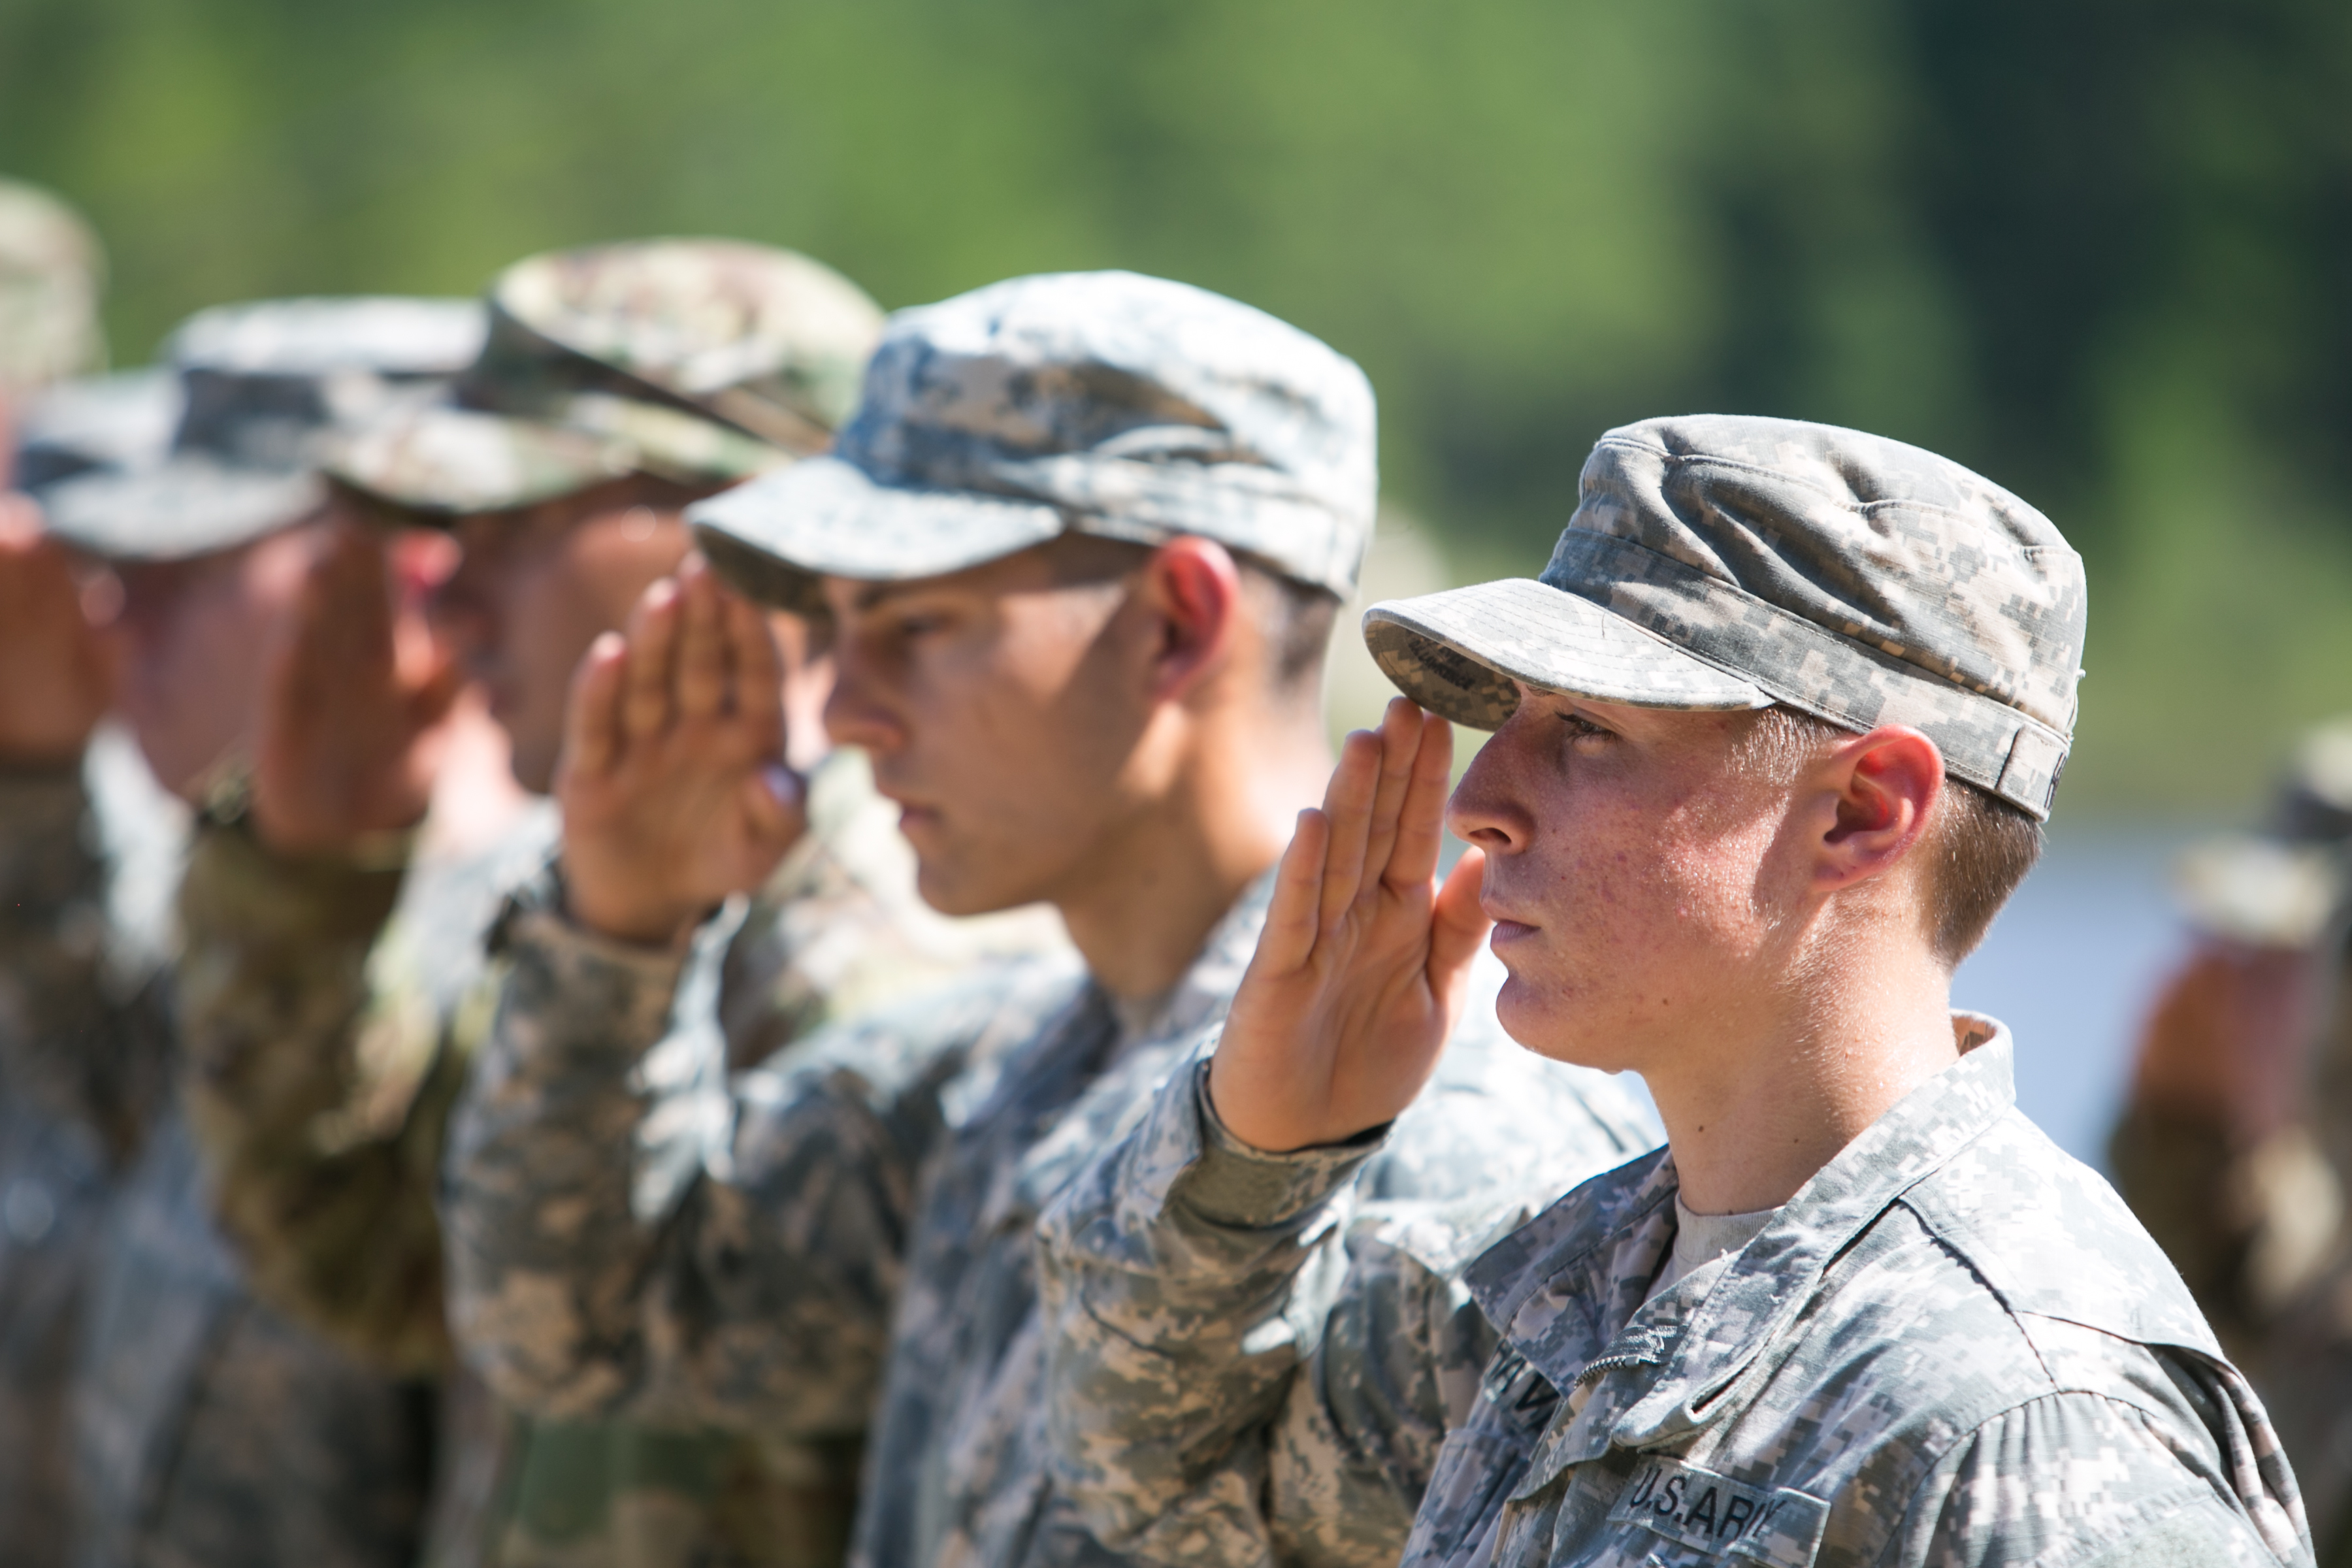 military positions for women